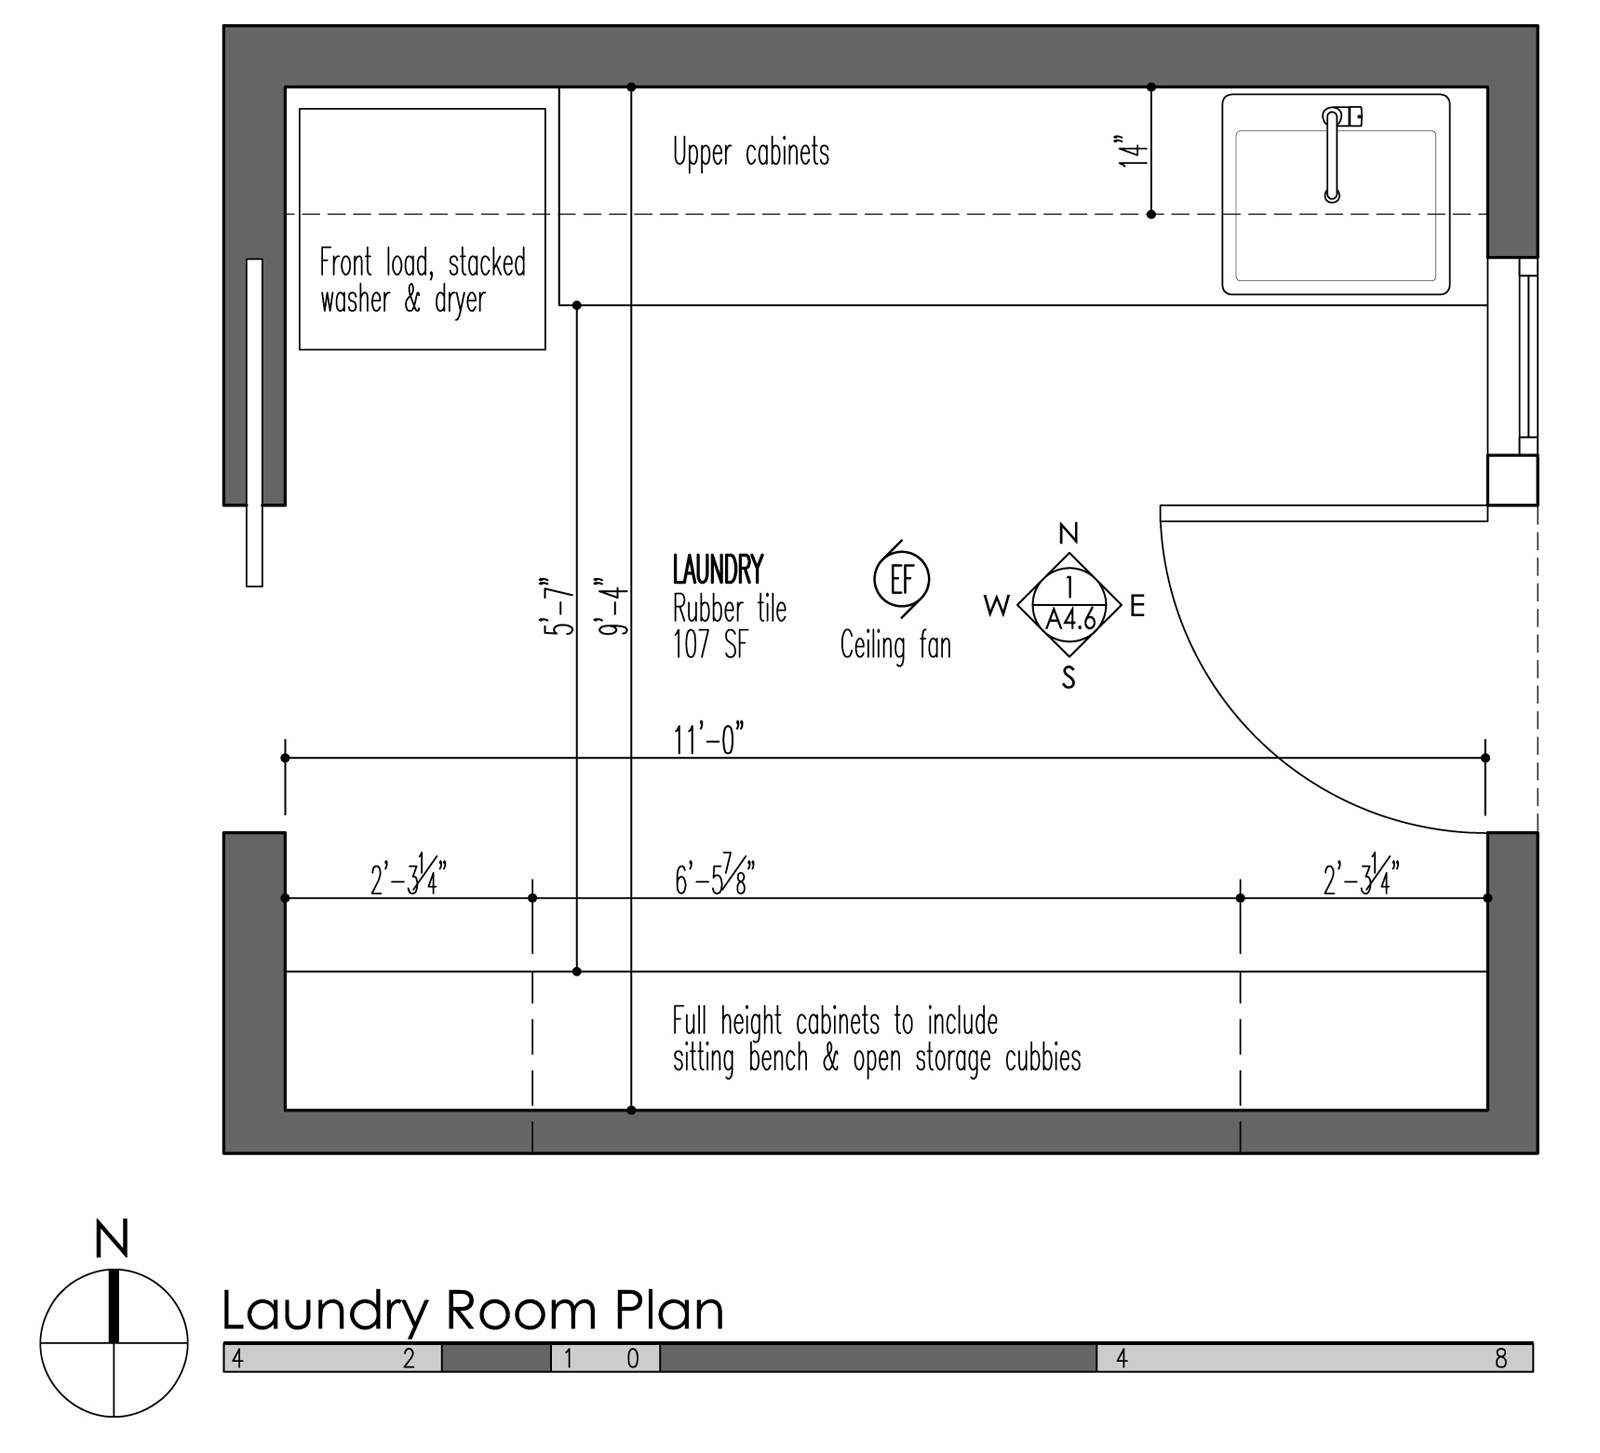 Mud Laundry Room Design Build Blog Table Fan Diagram Llc Innis Arden Plan